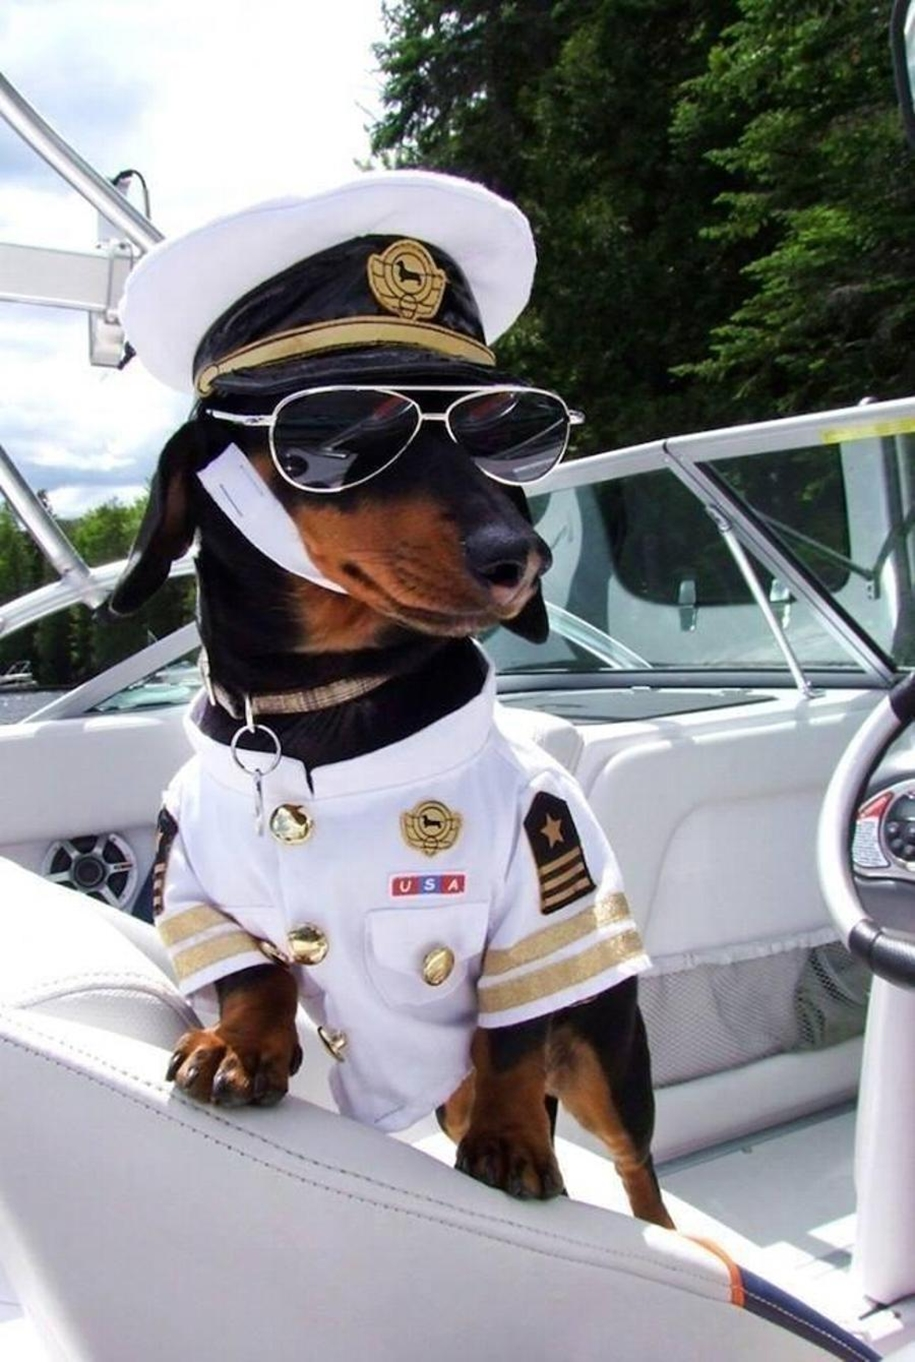 dachshund-in-funny-outfits-makes-more-money-than-the-owners-02